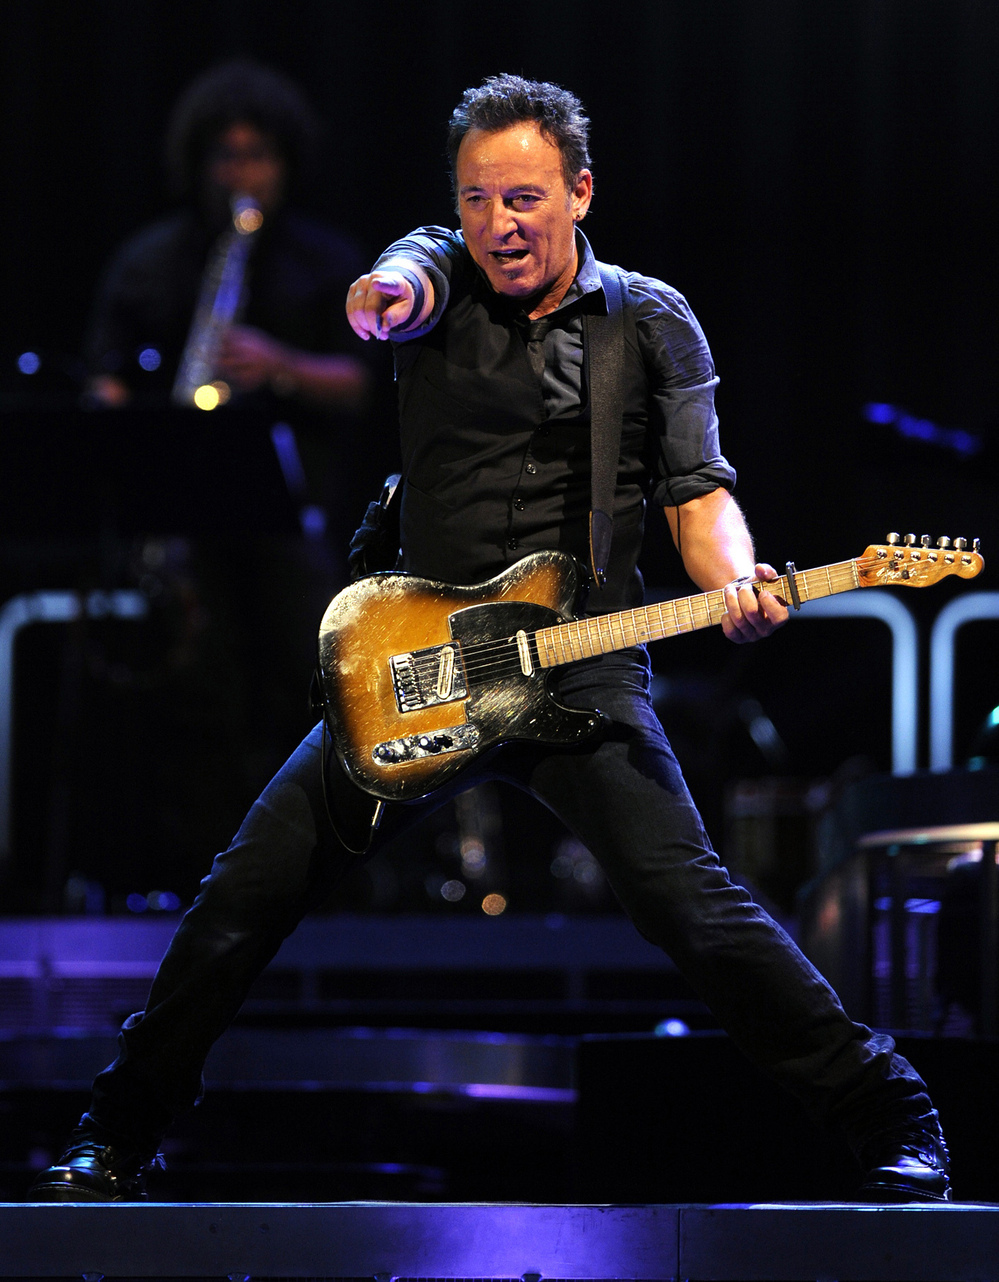 Bruce Springsteen and The E Street Band perform, on May 13, 2012 in Sevilla, Spain.